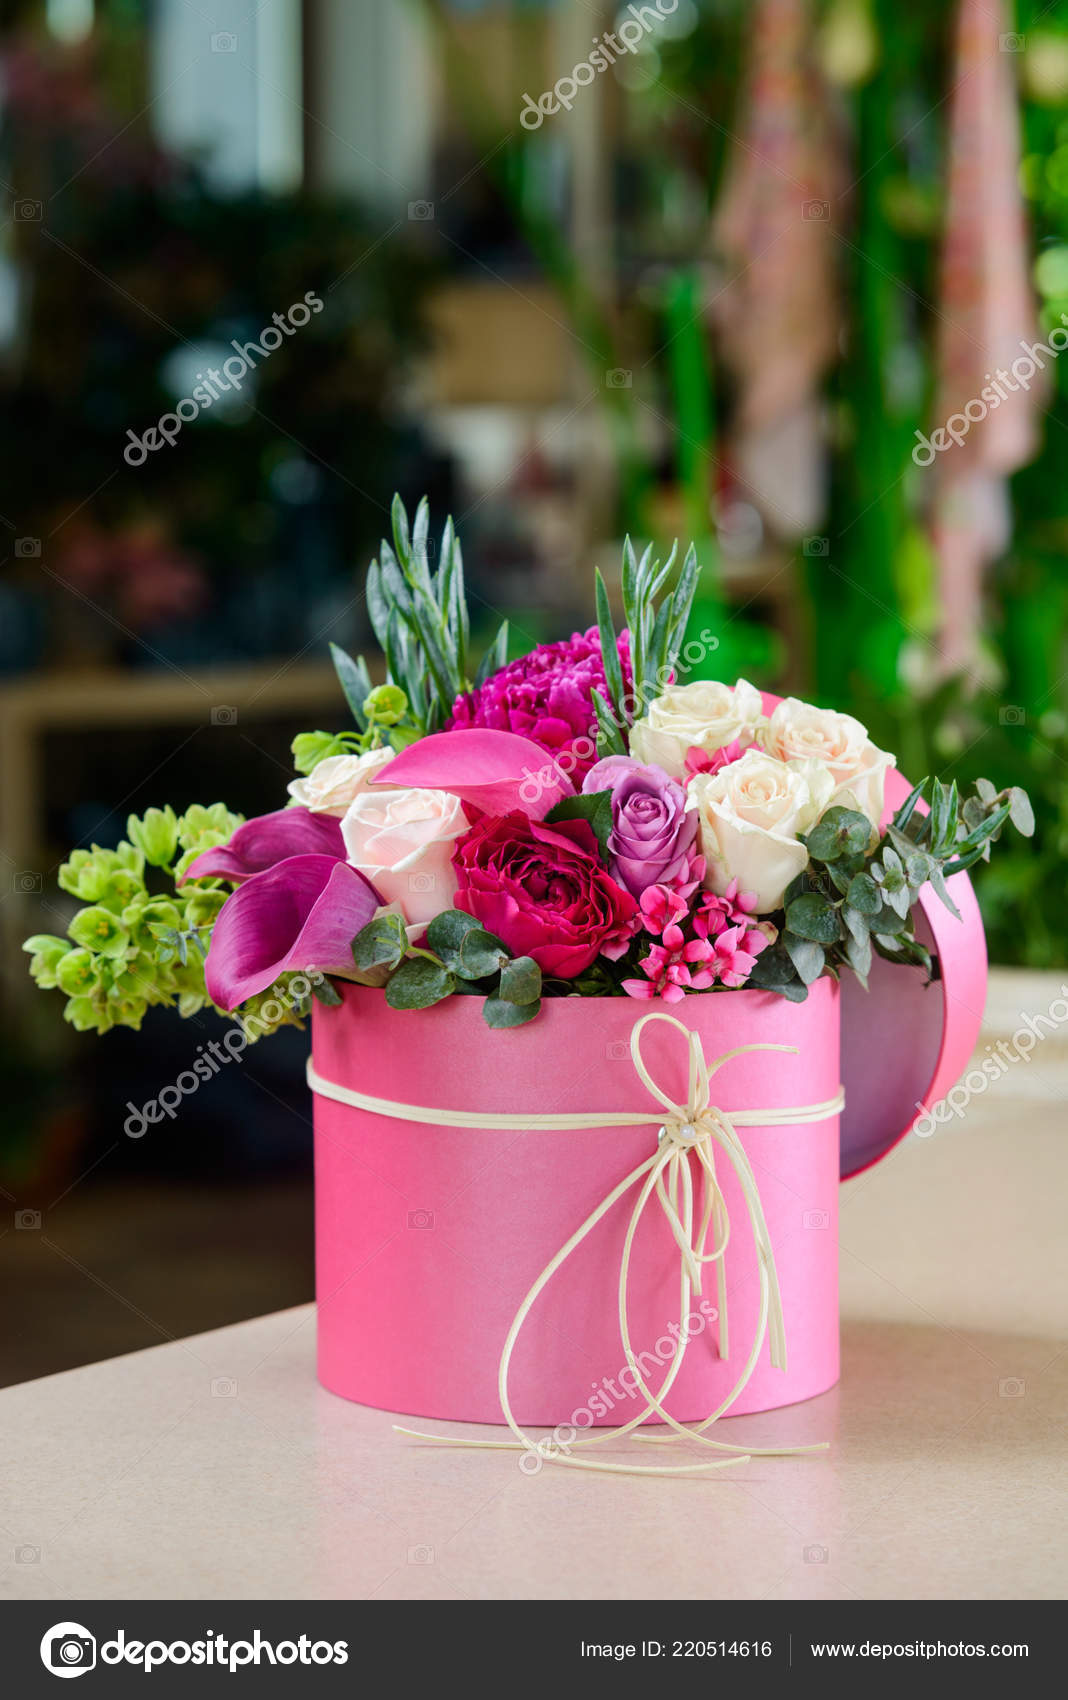 Birthday Present For Girlfriend Bright Flower Composition Of Pink And White Blossoms Placed In Round Box Work Professional Florist